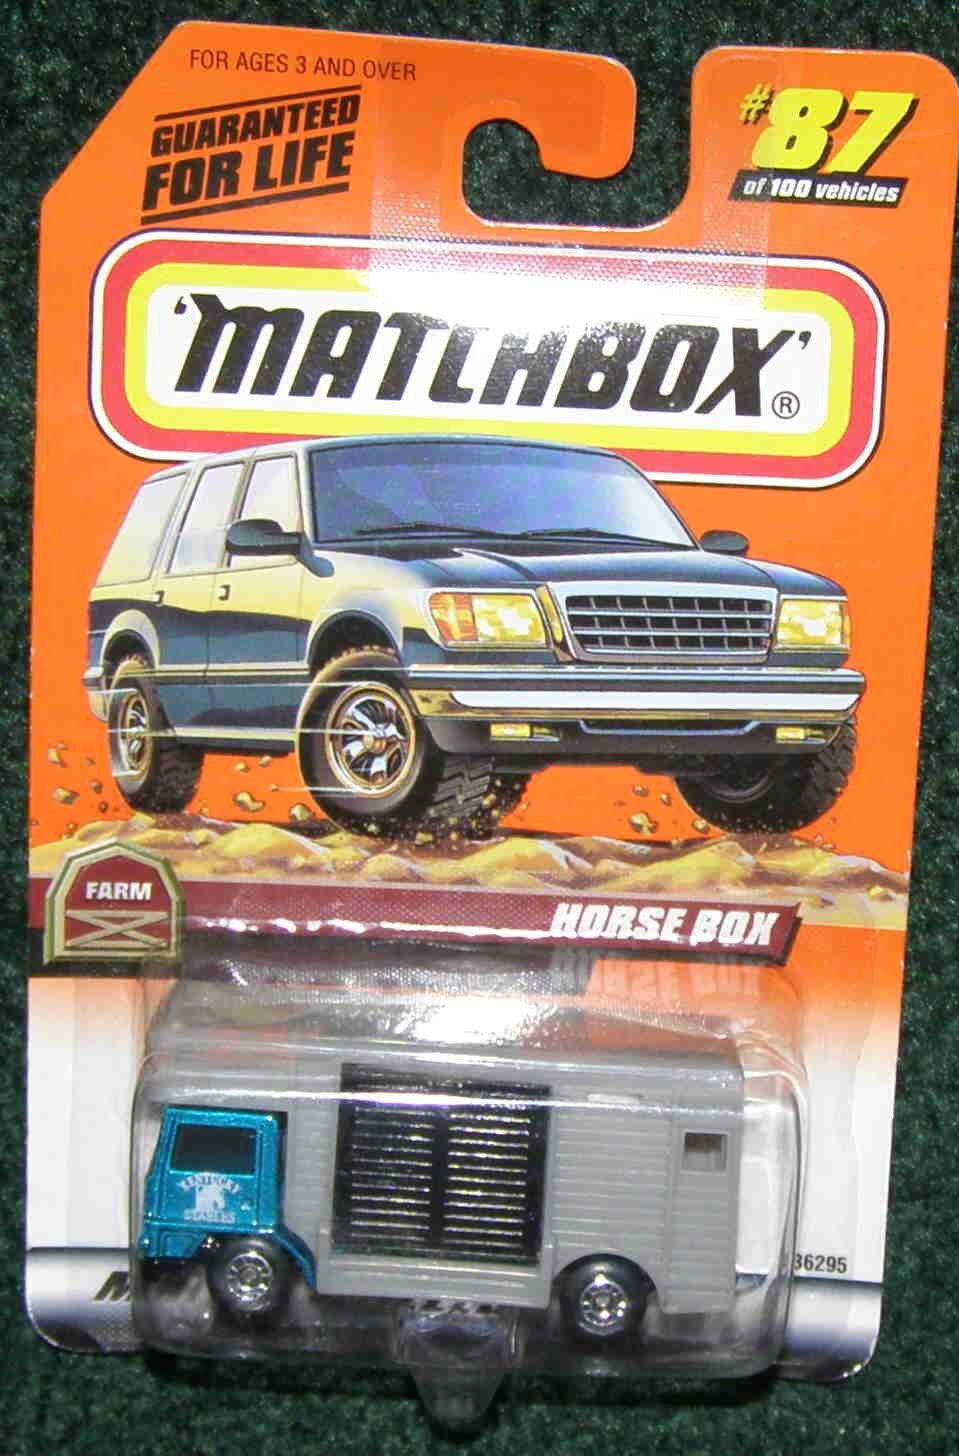 1999 #87 FARM SERIES TEAL & GREY HORSE BOX TRUCK (HORSE IN BACK) by, MATCHBOX FARM SERIES... by